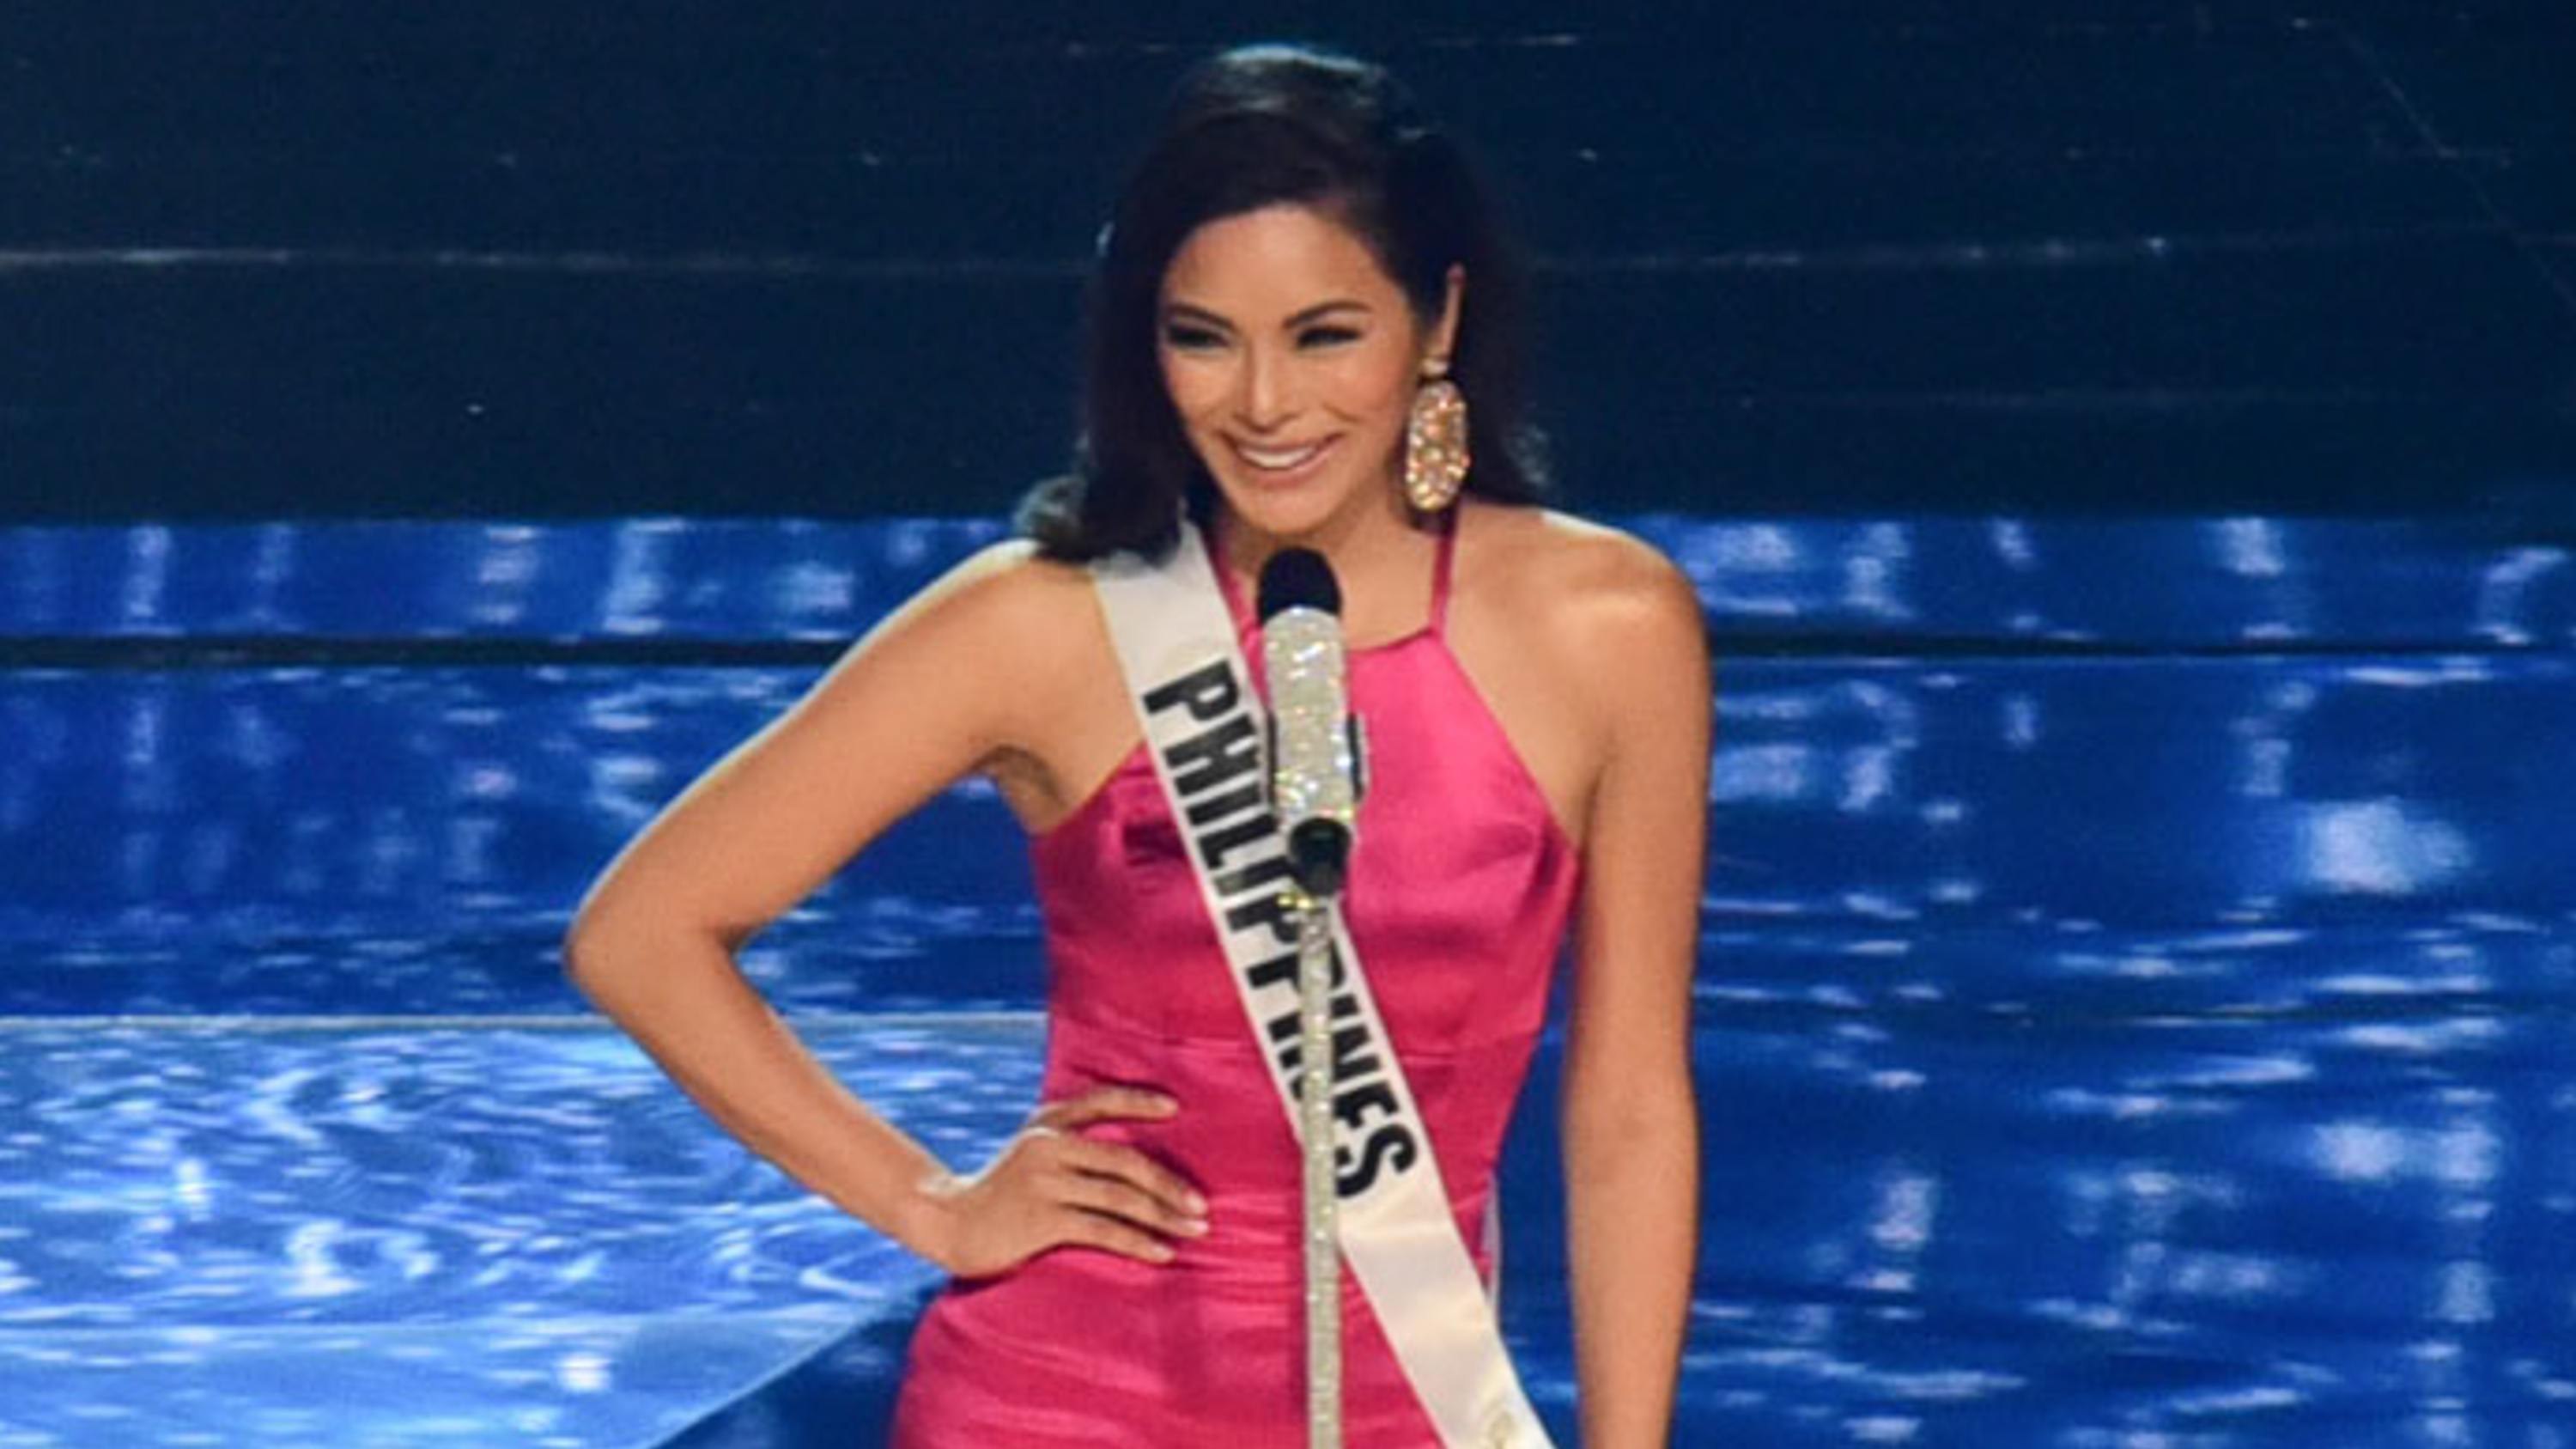 the gallery for gt miss universe 2012 top 5 swimsuit